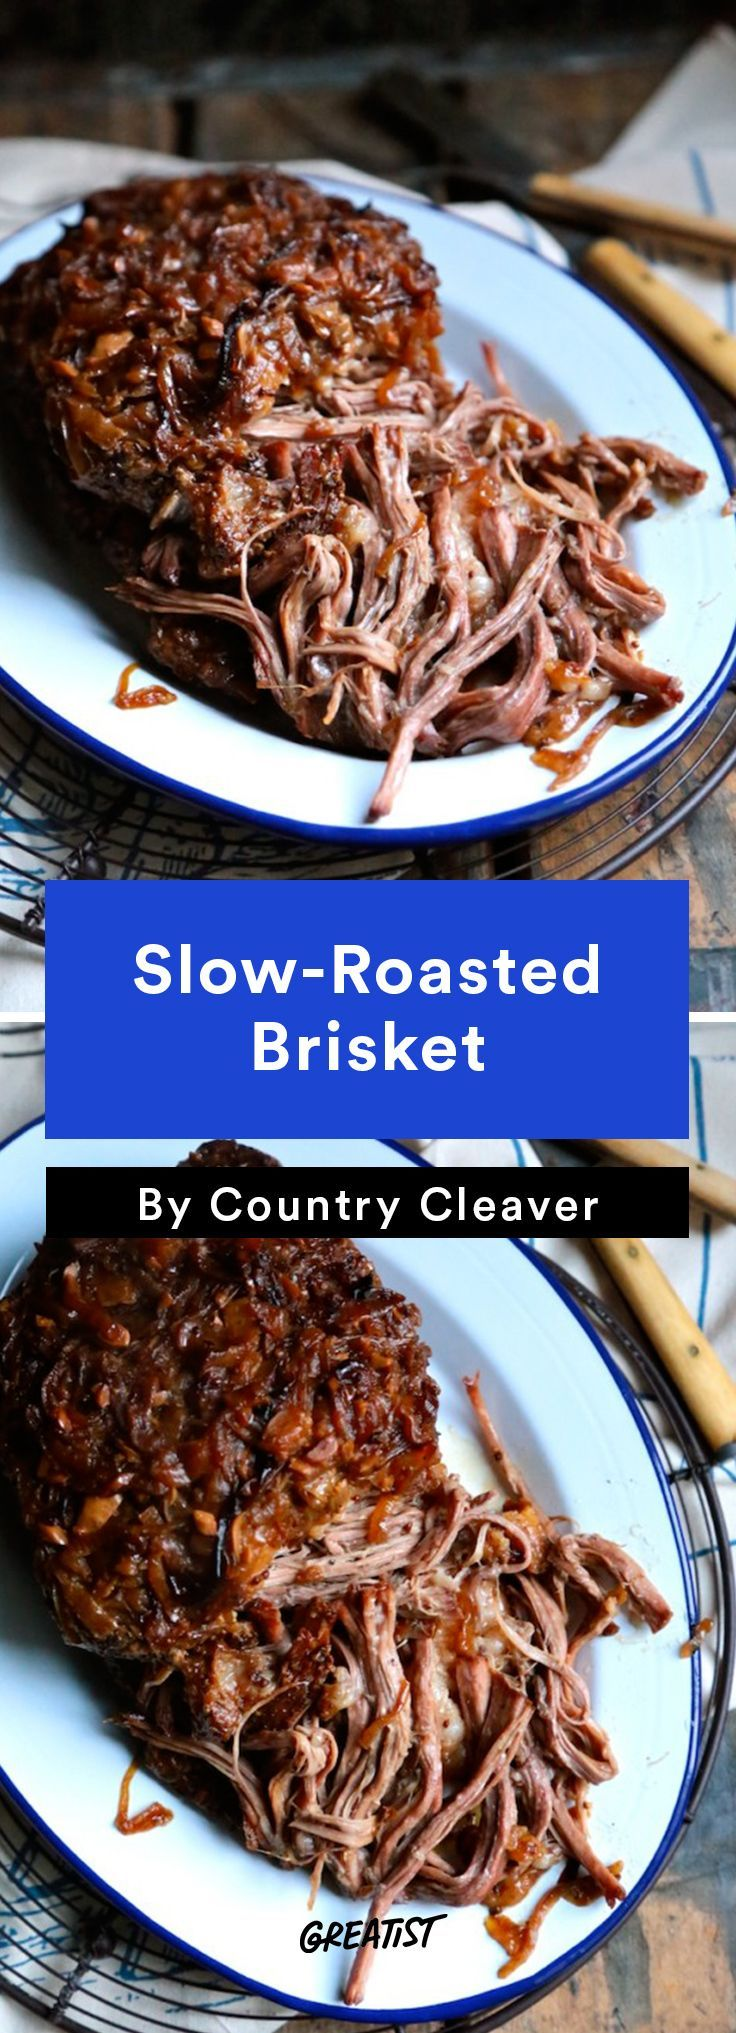 1. Slow-Roasted Brisket #healthy #rosh #hashanah #recipes http://greatist.com/eat/rosh-hashanah-recipes-for-a-healthy-sweet-new-year